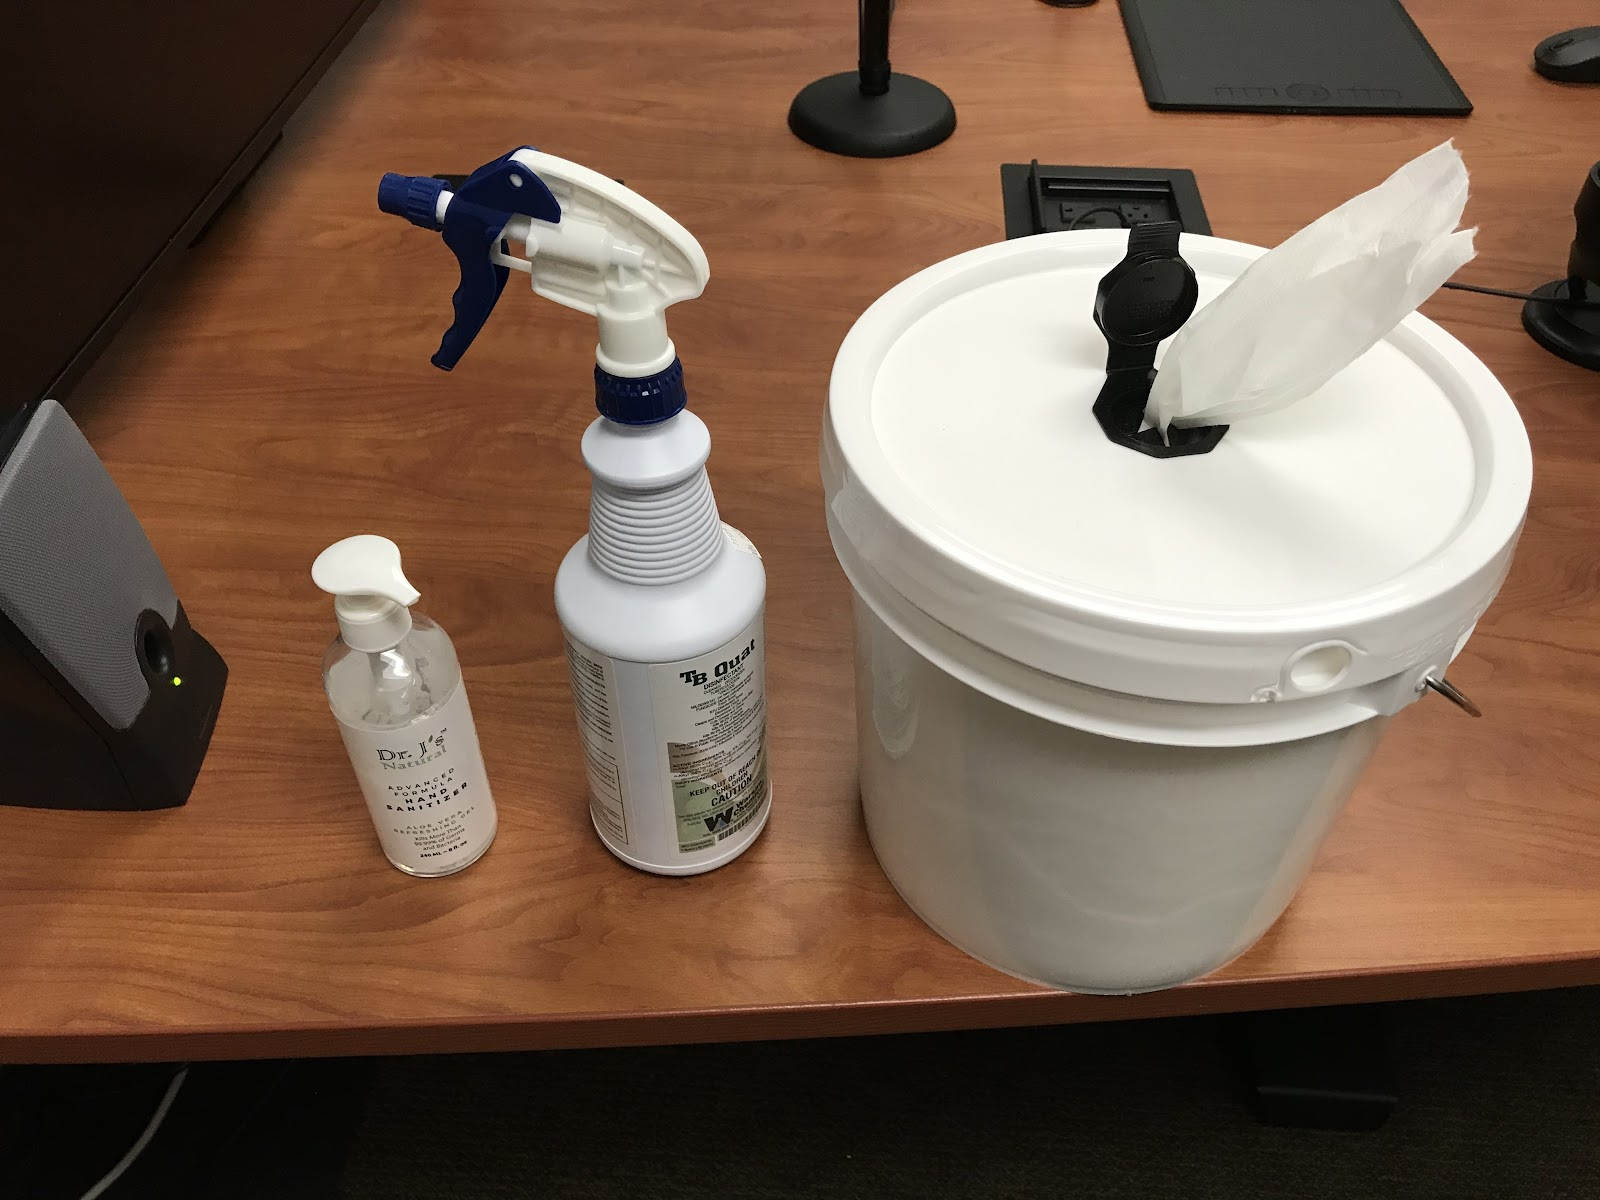 Cleaning fluids and wipes